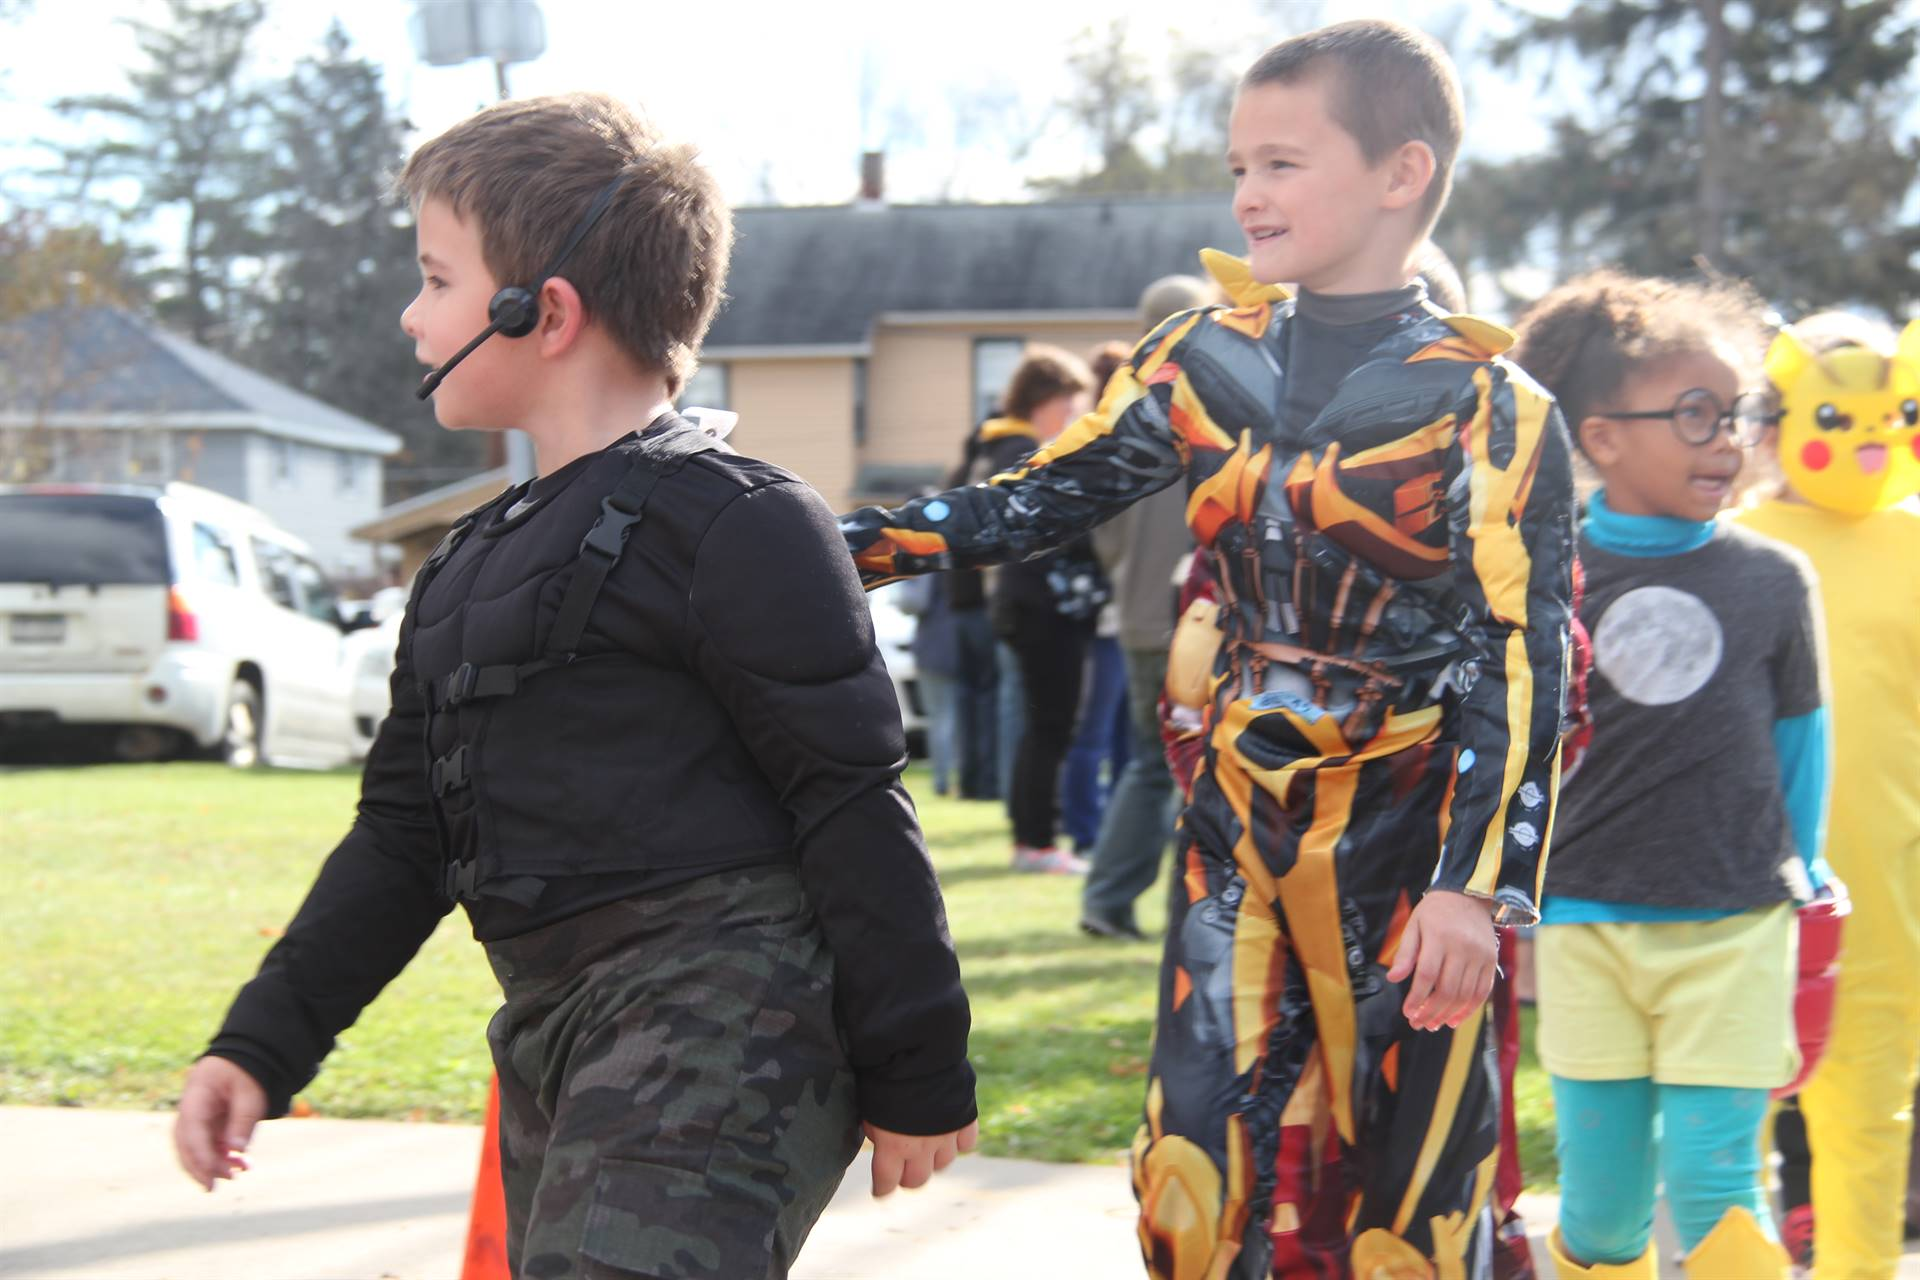 students dressed up for halloween parade